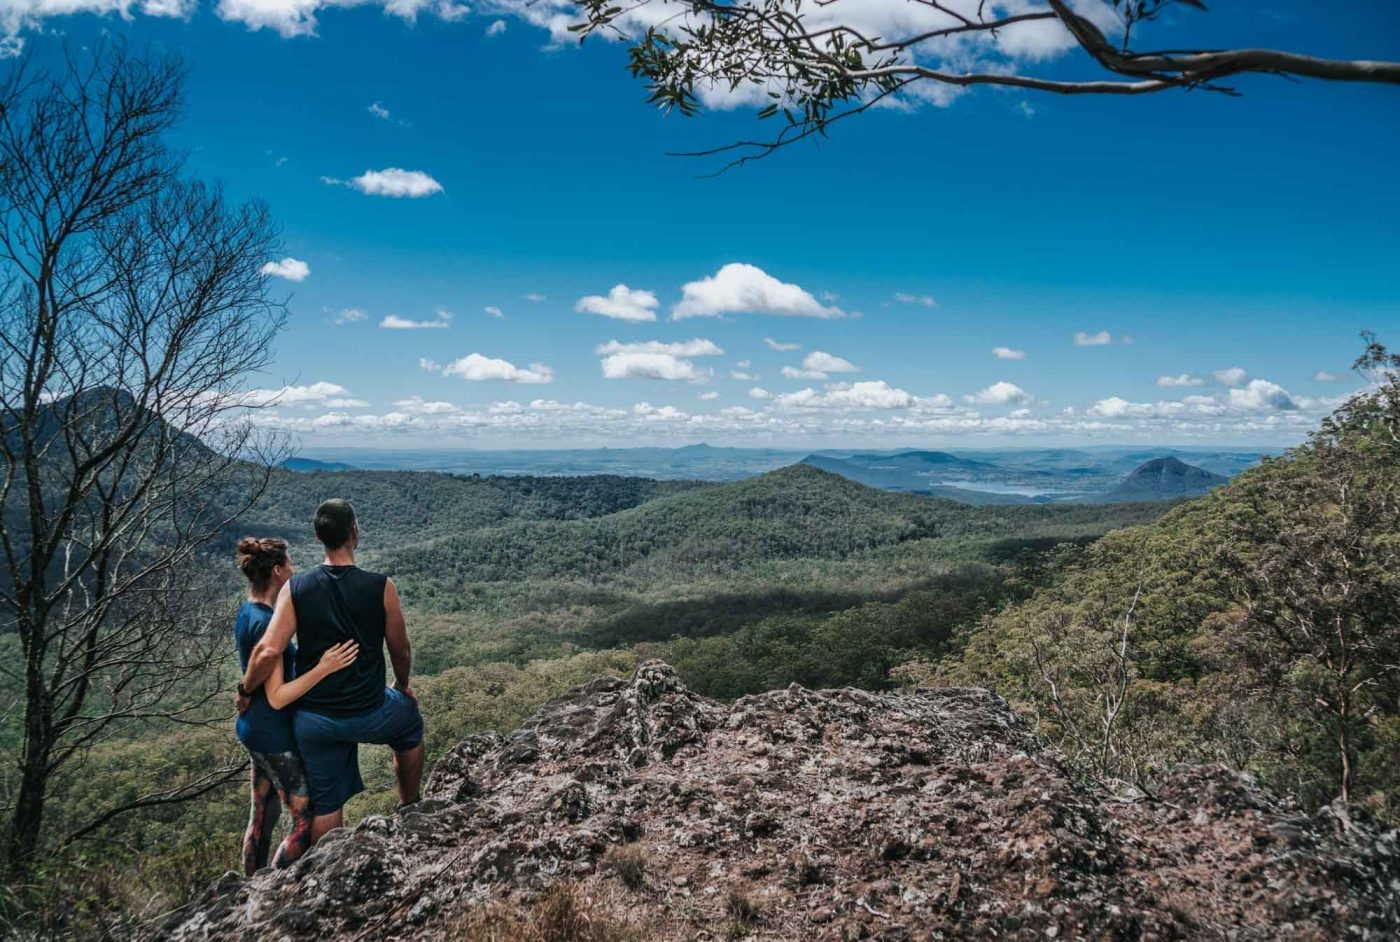 Scenic Rim Trail & Mount Mitchell in Queensland, Australia